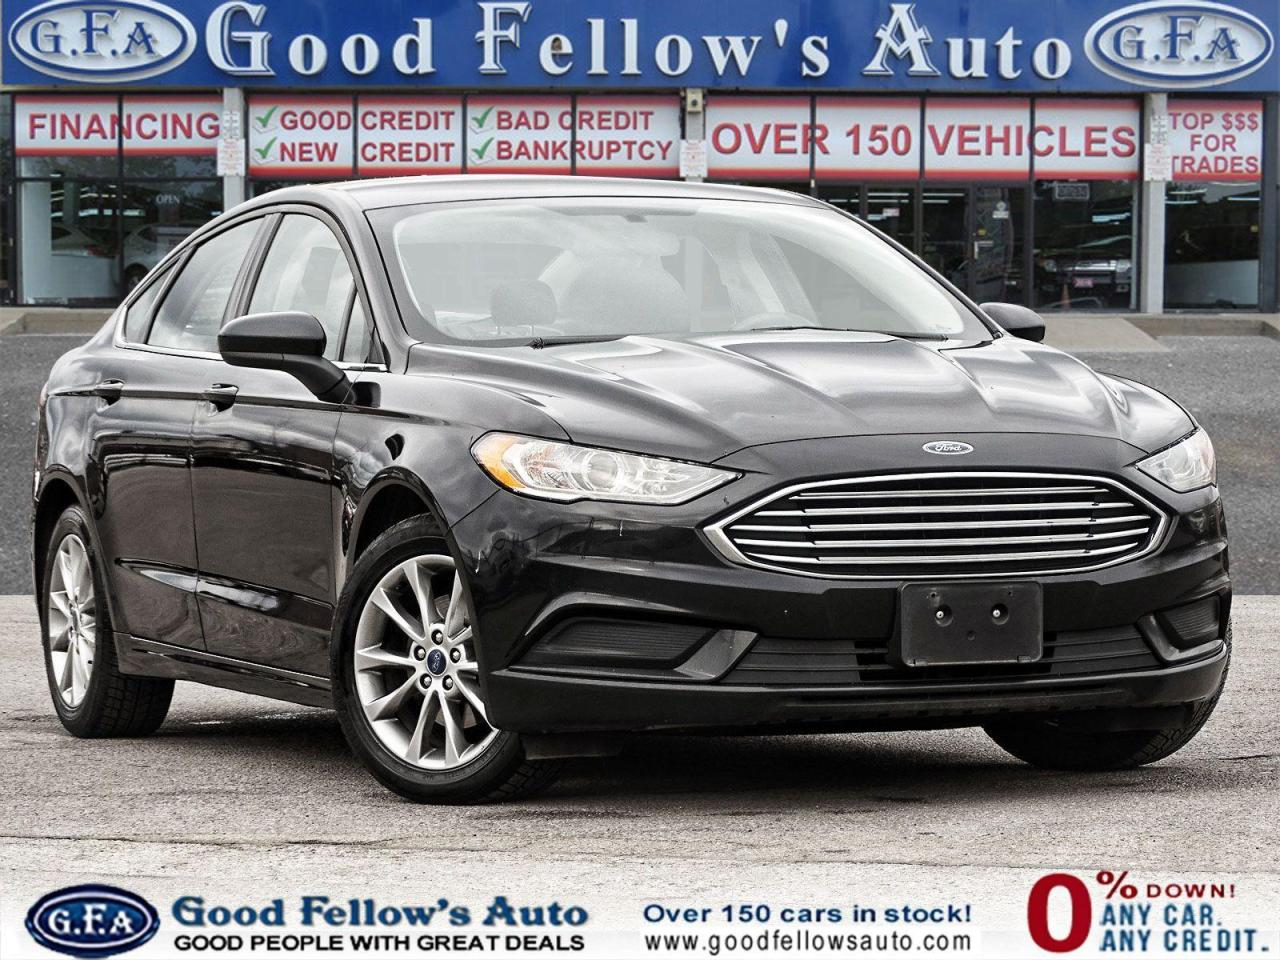 used 2017 Ford Fusion car, priced at $12,400